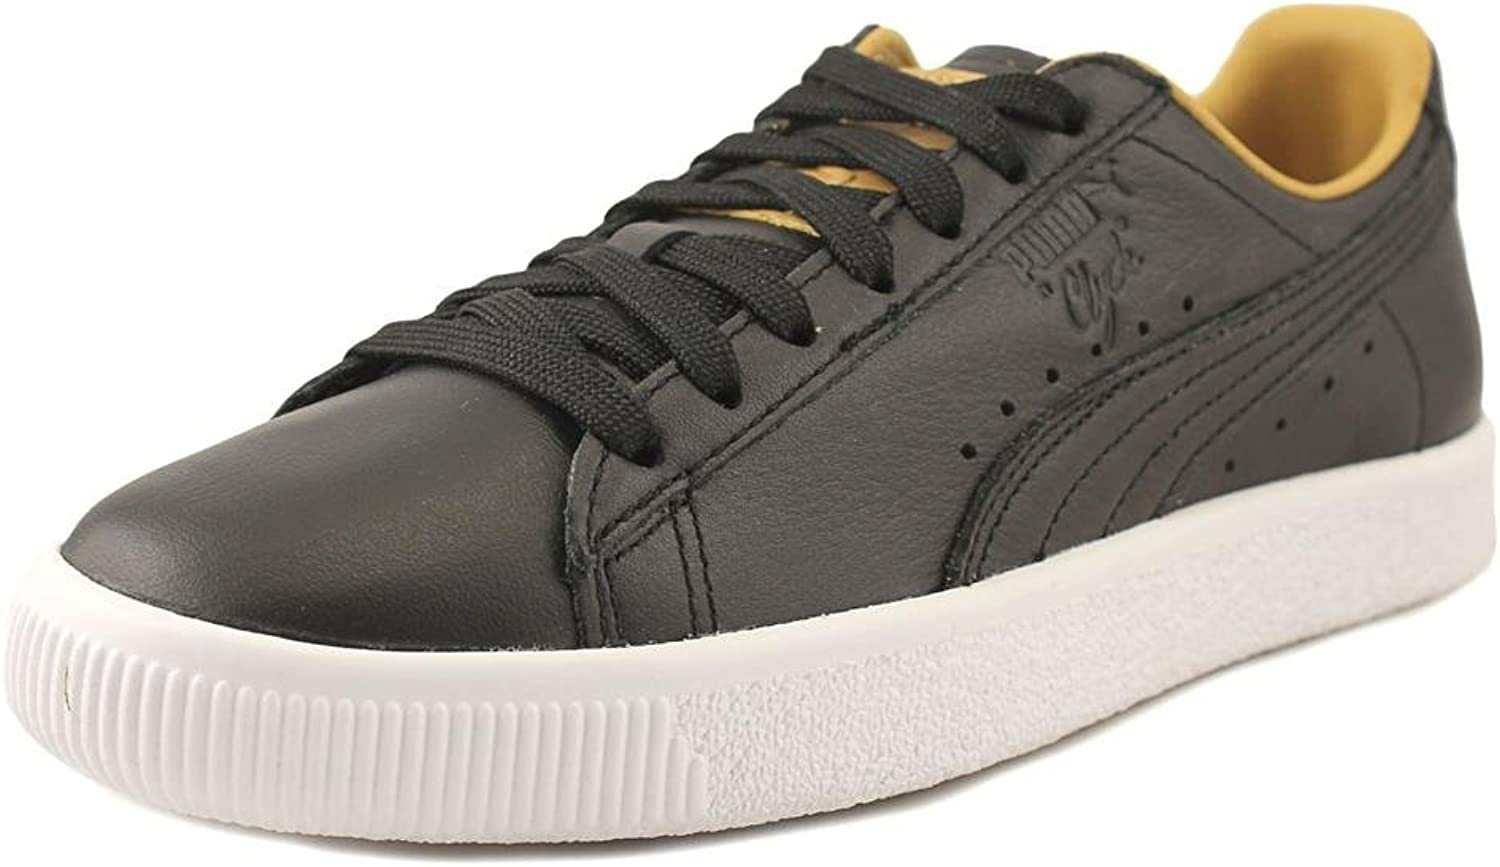 PUMA Womens Clyde Core Leather Leather Low Top Lace up Fashion Sneakers